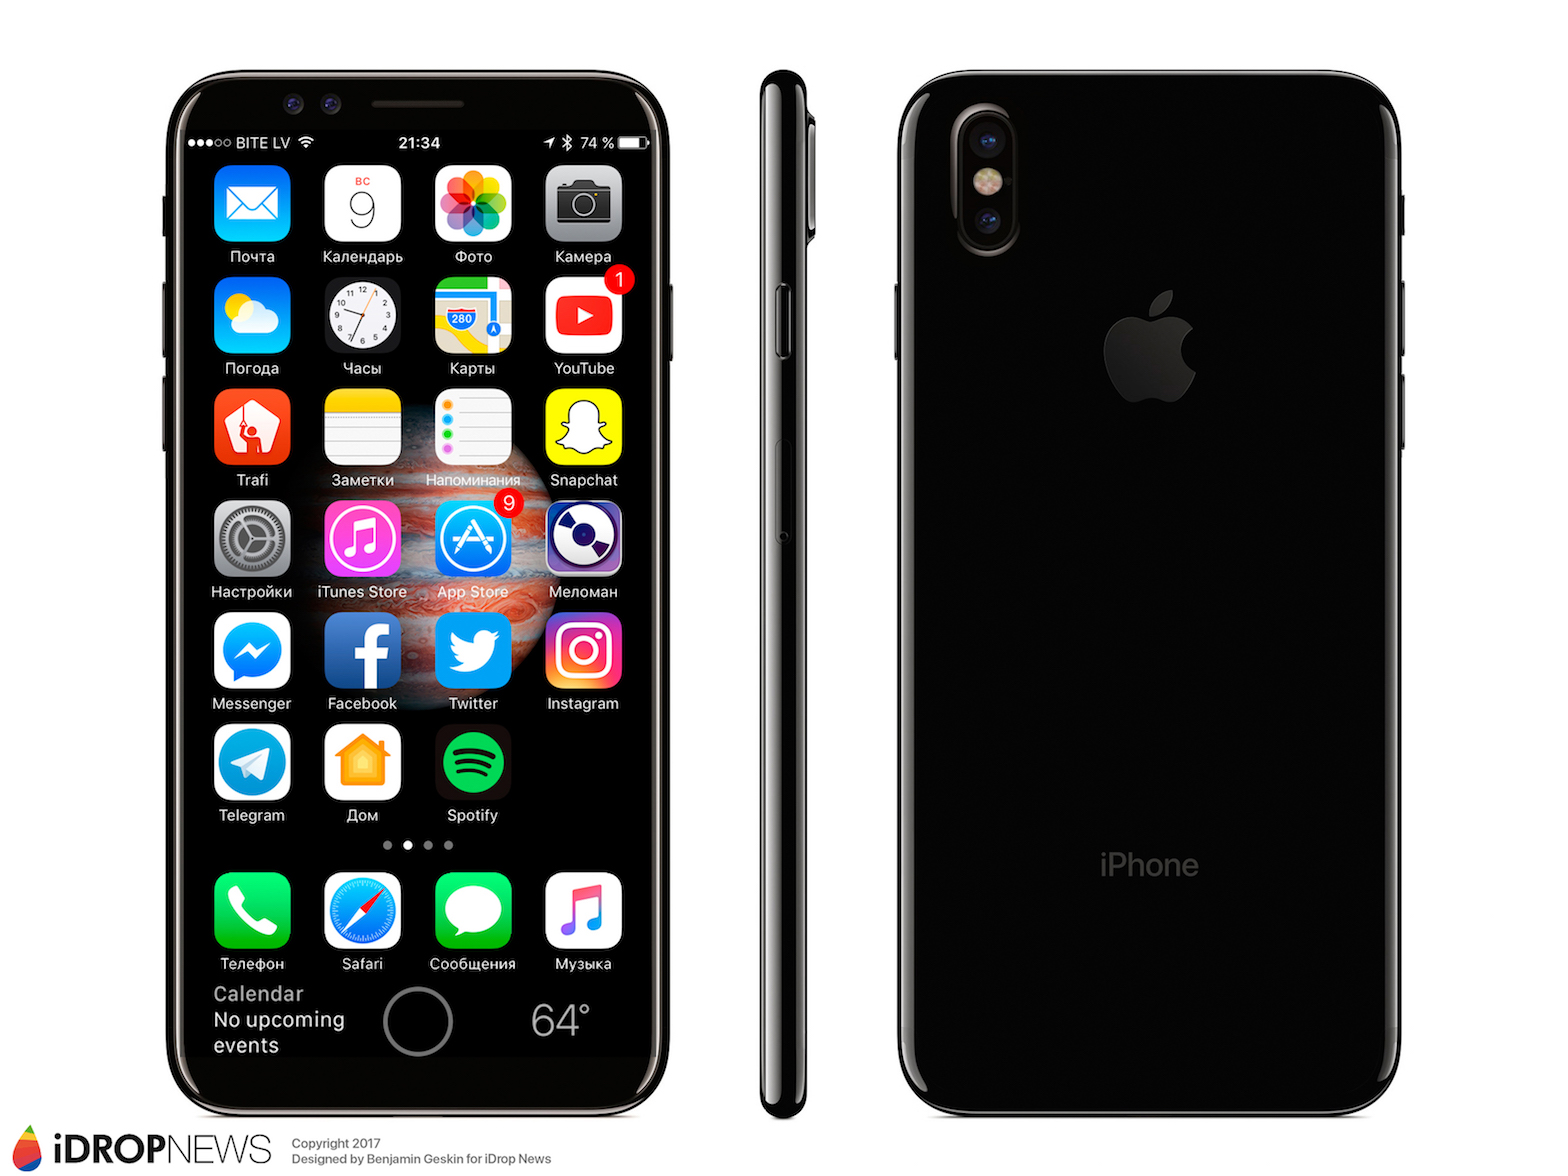 iphone 8 release date images features specifications price idropnews. Black Bedroom Furniture Sets. Home Design Ideas